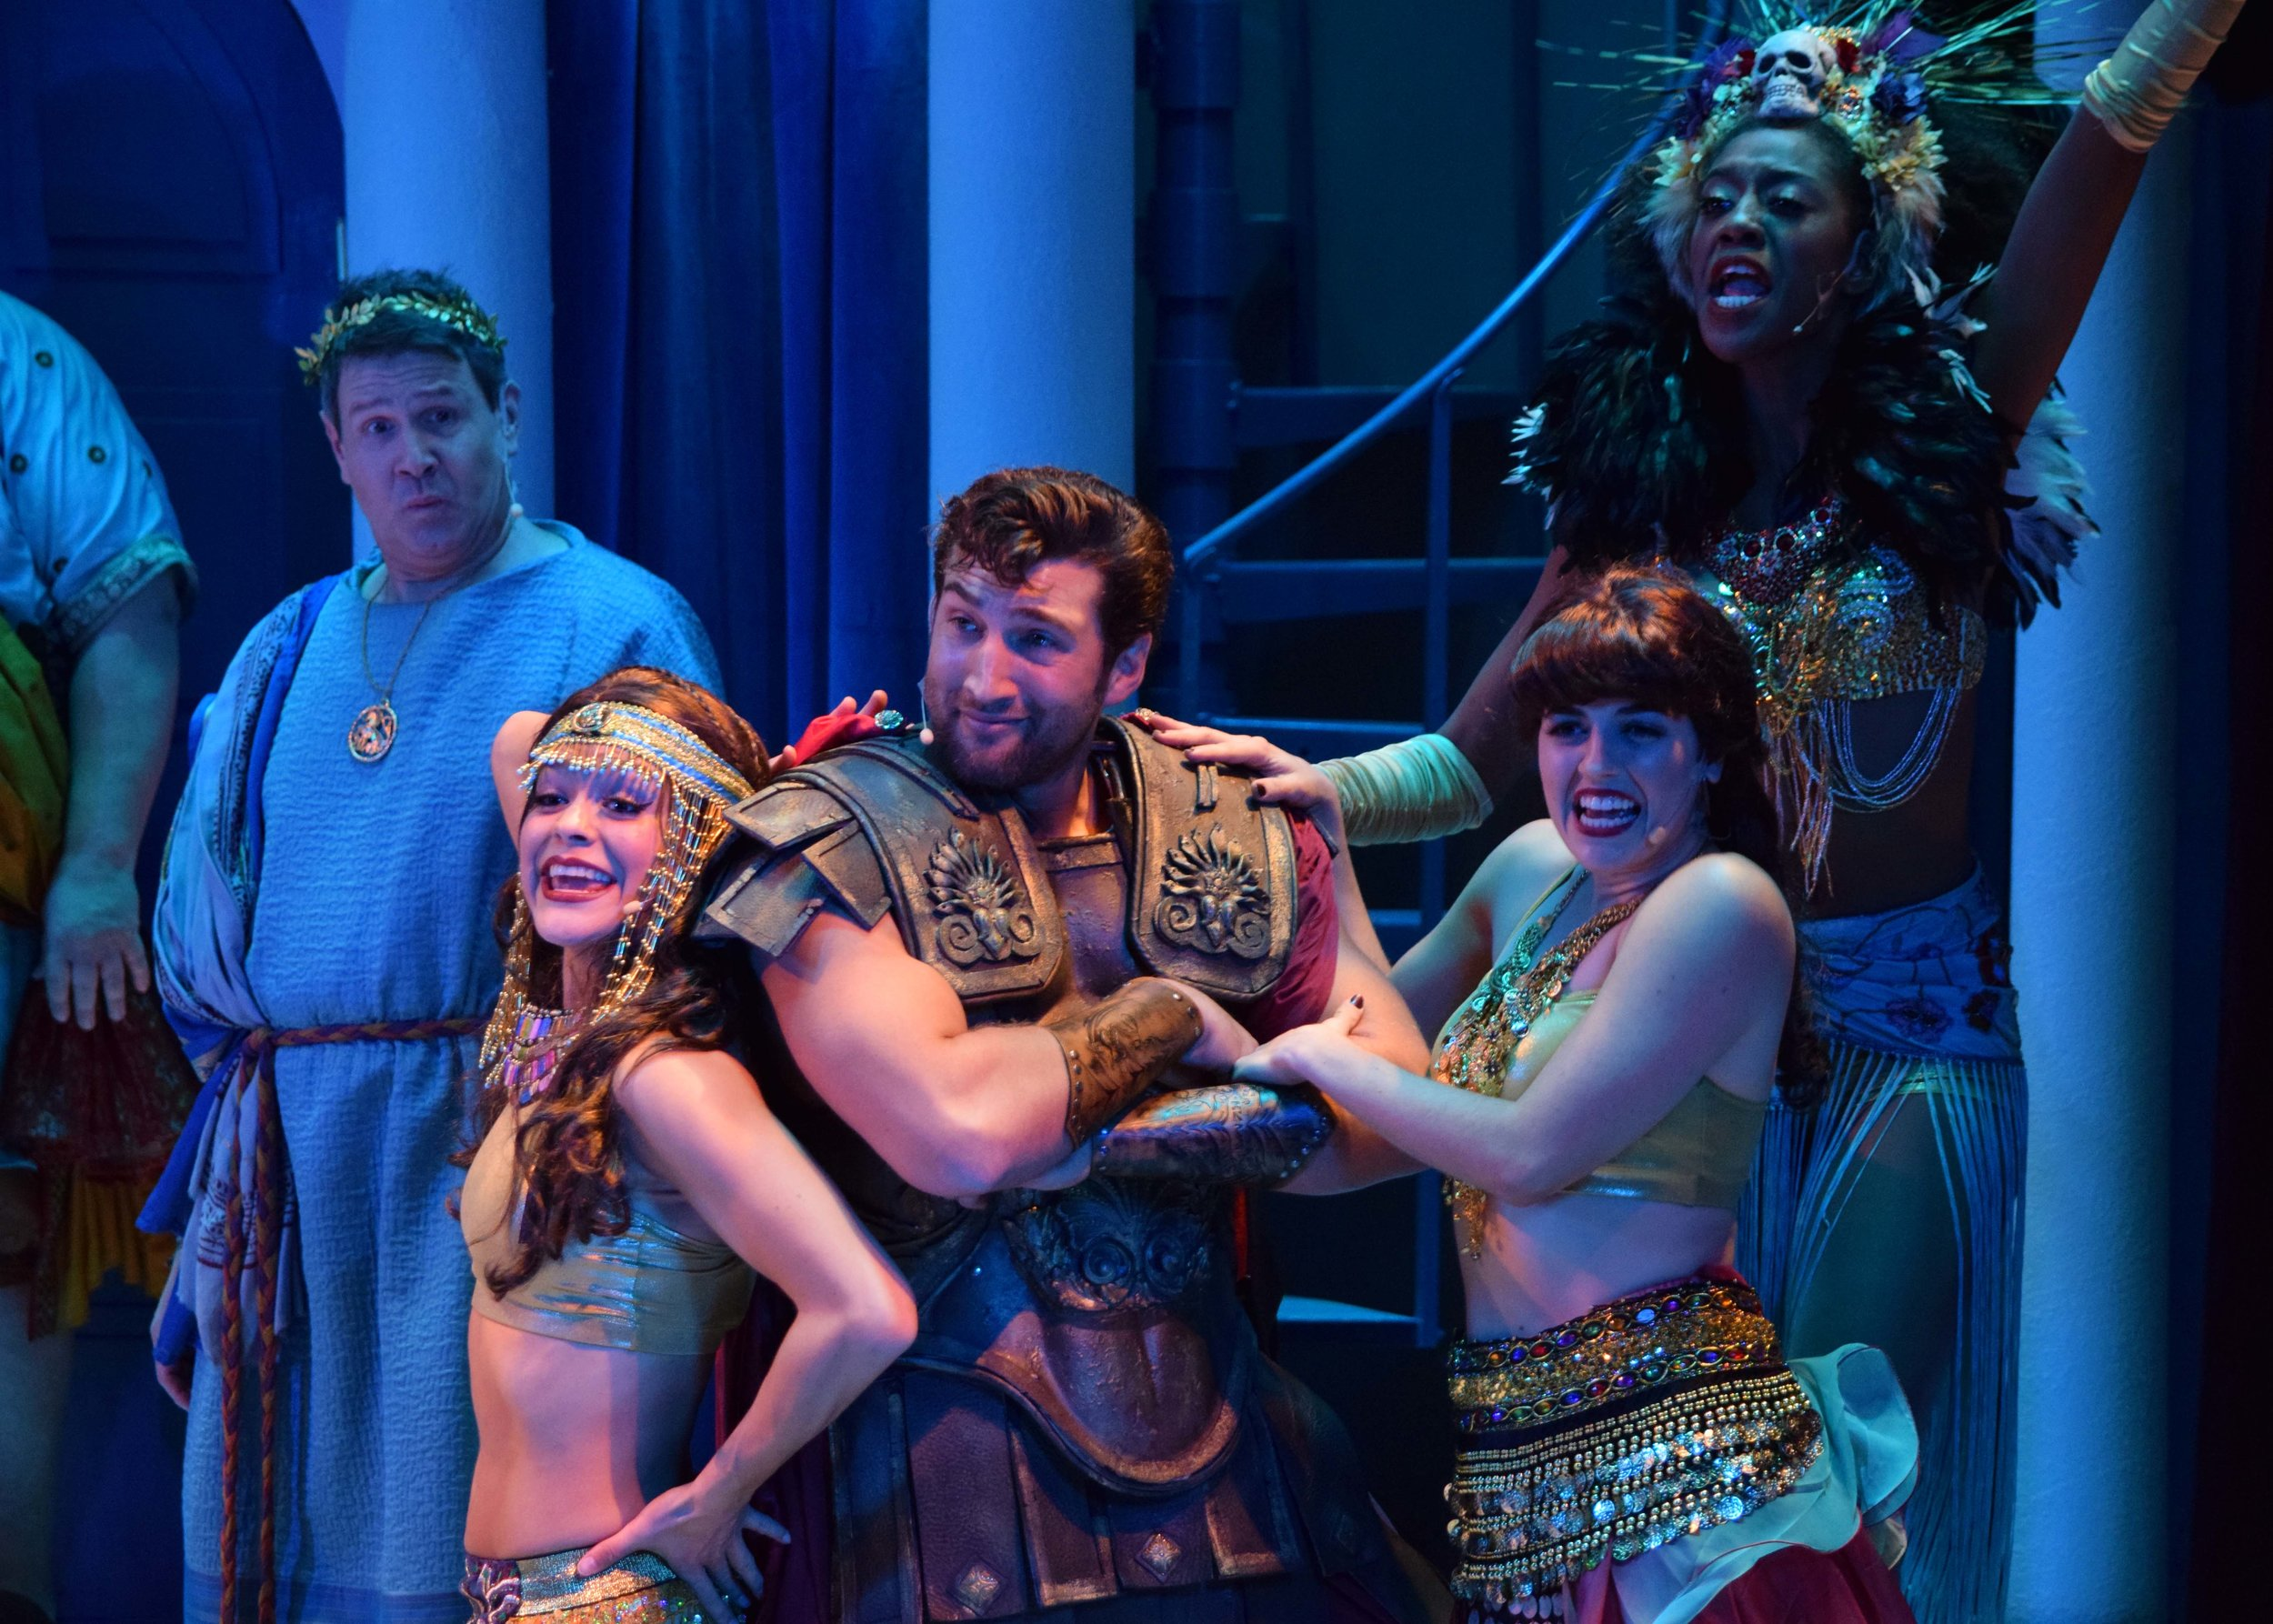 Senex (Kevin Symons) and Miles Glorious (Clayton Snyder) with Courtesans (Liz Bustle, Shamicka Benn, and Vanessa Nichole) in A Funny Thing Happened On The Way To The Forum at the Garry Marshall Theatre. Photo by Chelsea Sutton.